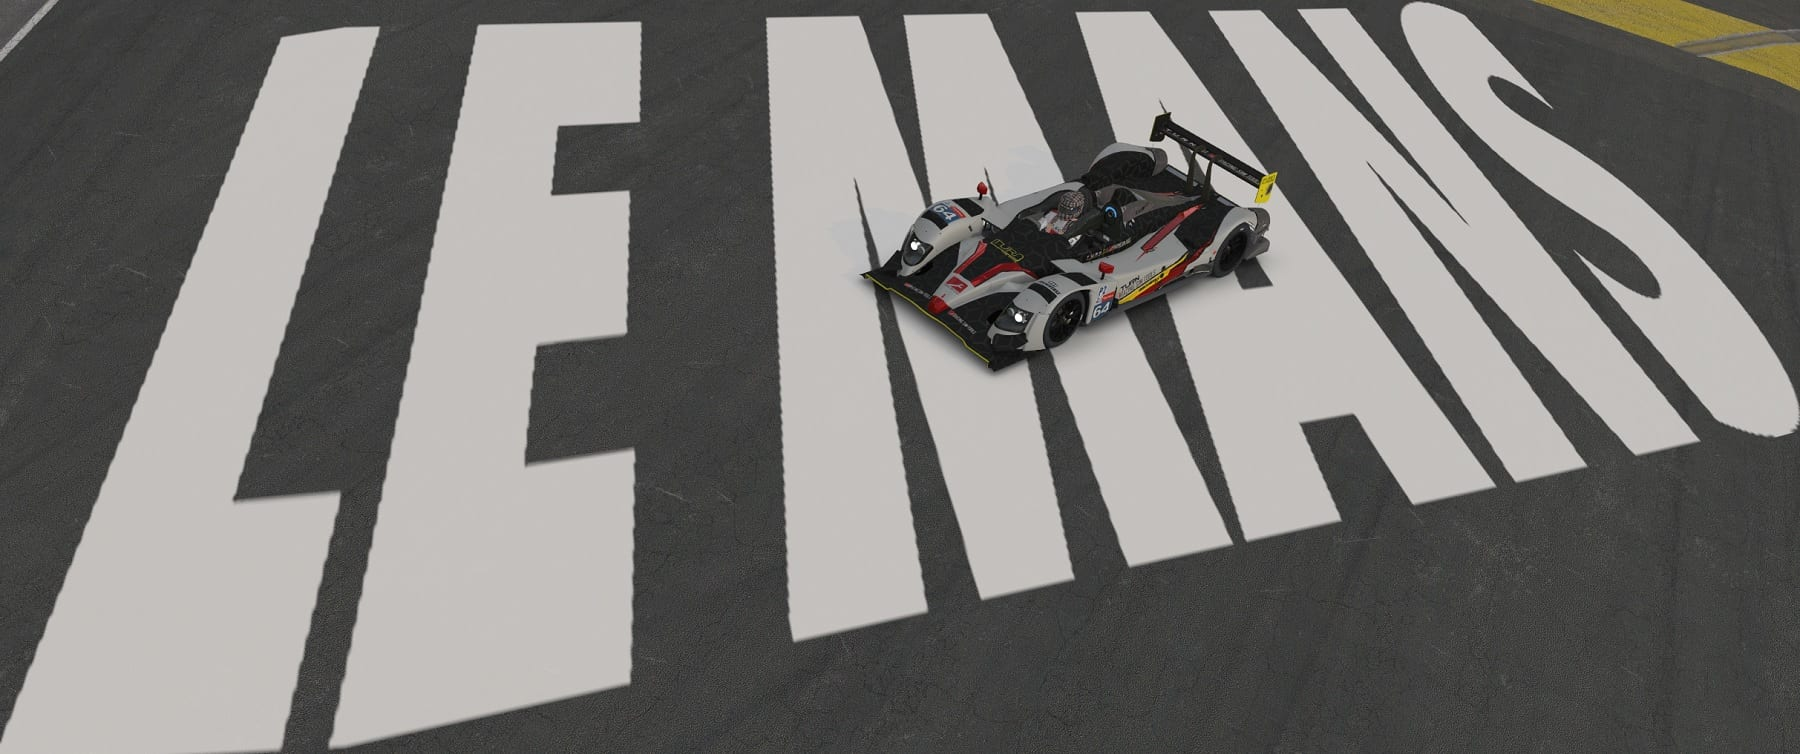 iracing le mans